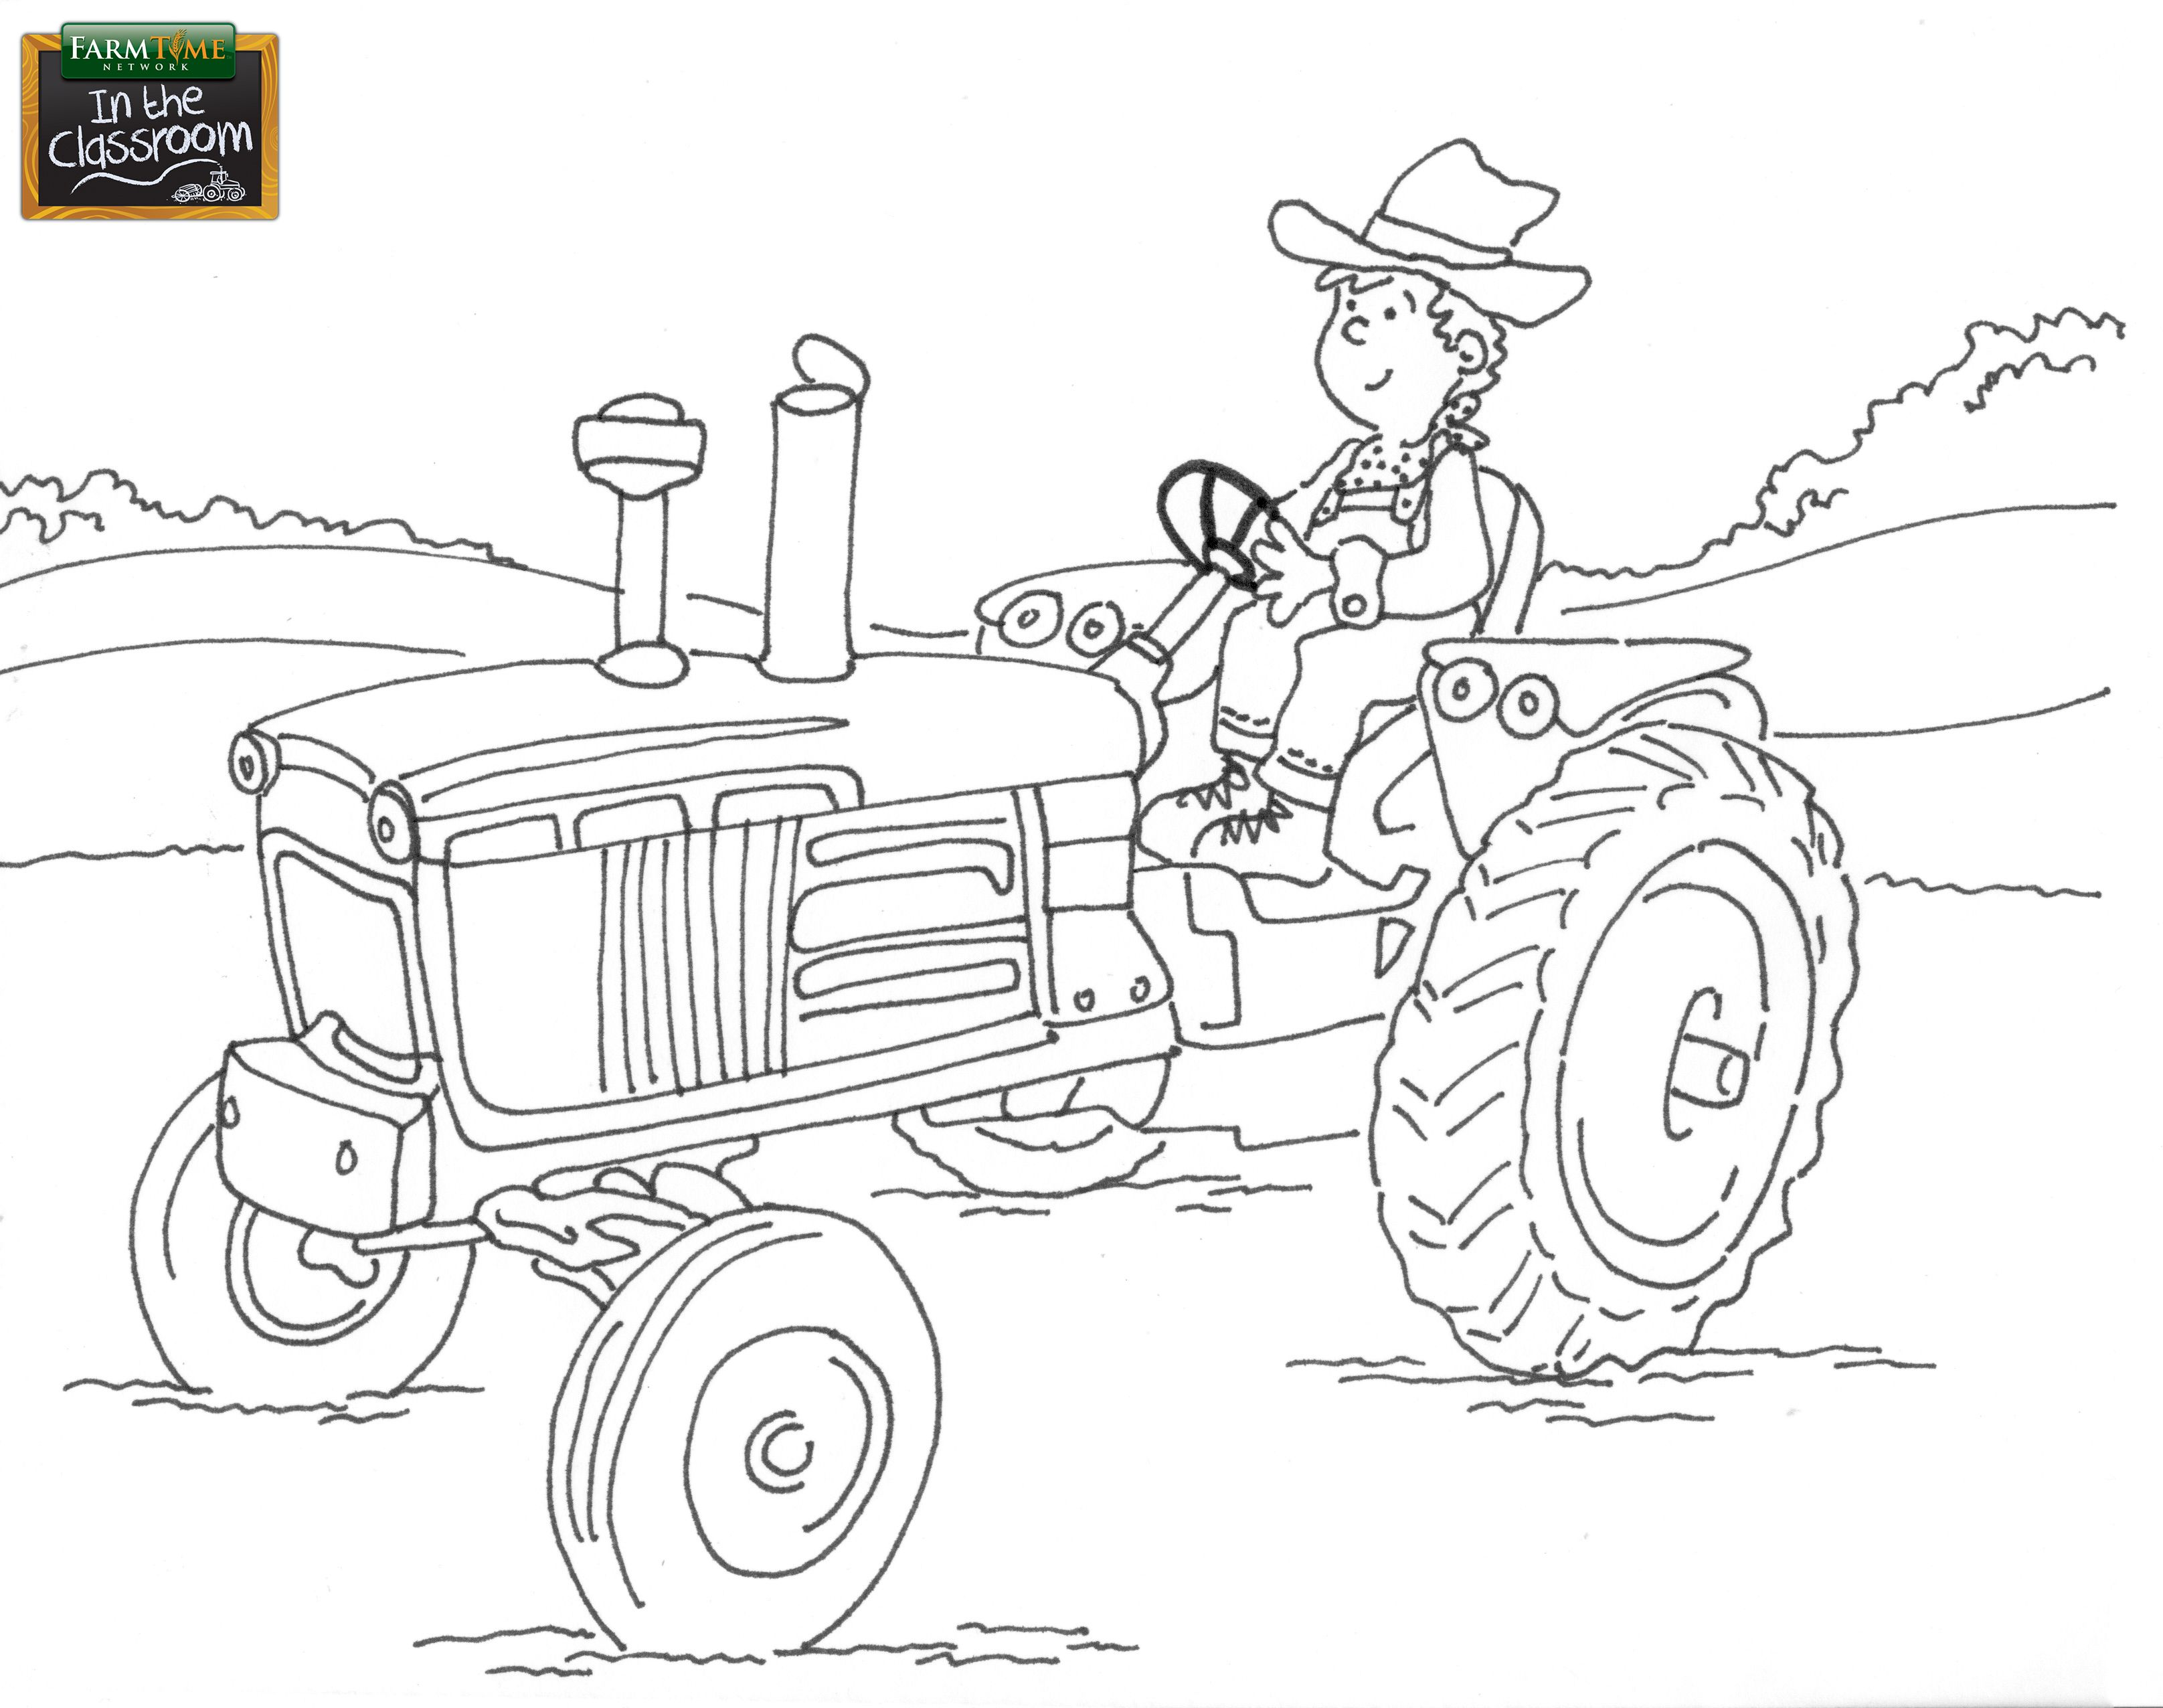 Printable coloring pages coloring for kids coloring pages for kids teaching tools